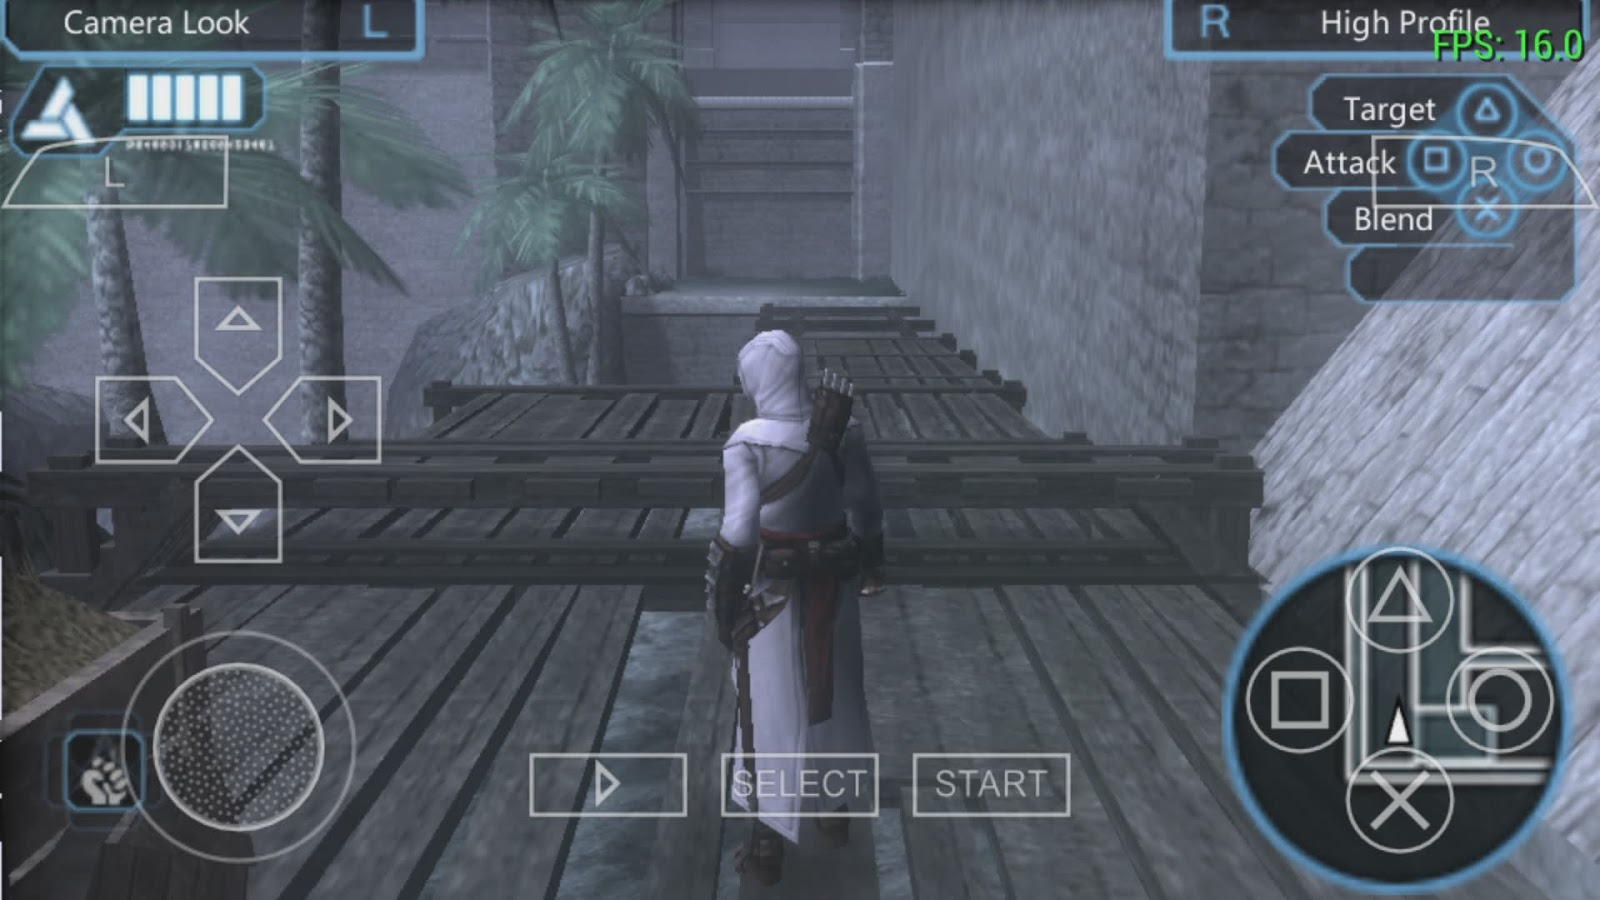 How To Download Assassin S Creed Bloodlines For Ppsspp